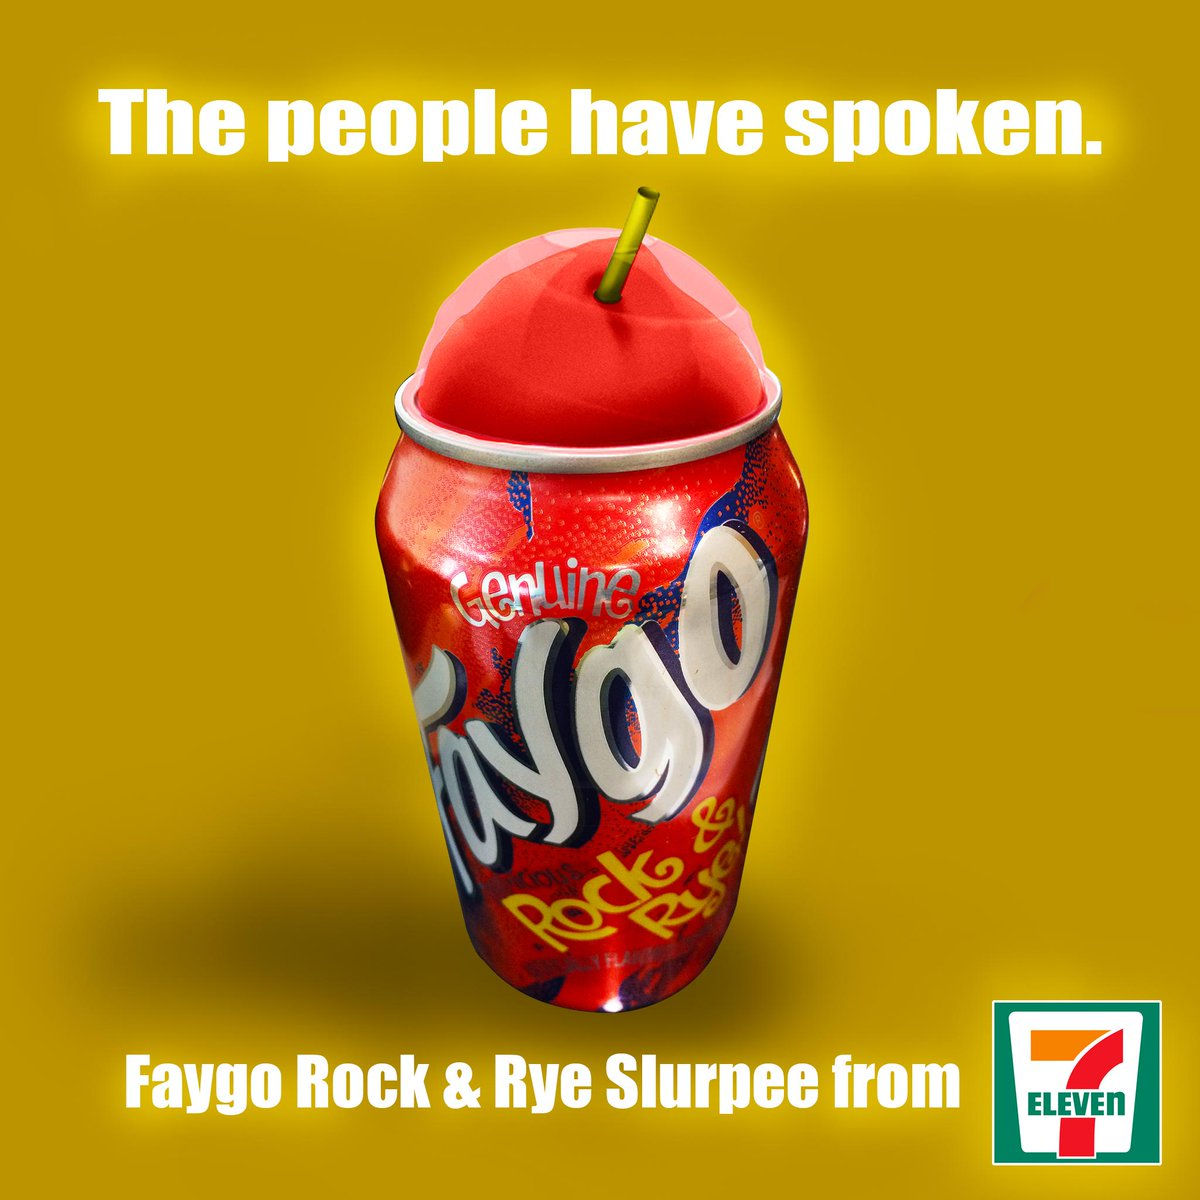 Introducing the new next best thing: Rock n' Rye @Slurpee drinks at 7-Eleven in Michigan and Ohio. http://t.co/0ml83lx8un